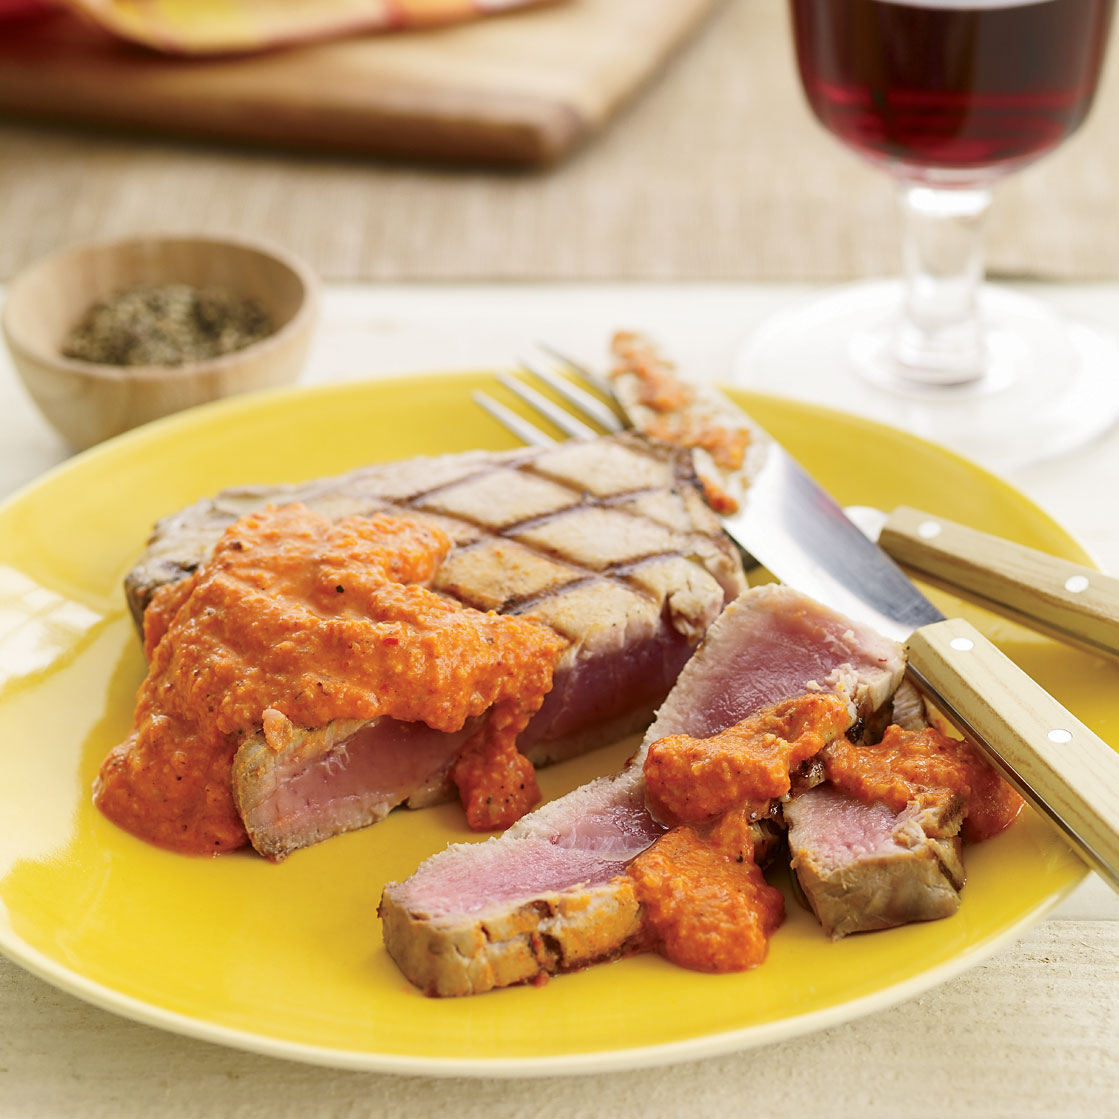 Grilled Tuna with Smoked-Almond Romesco Sauce